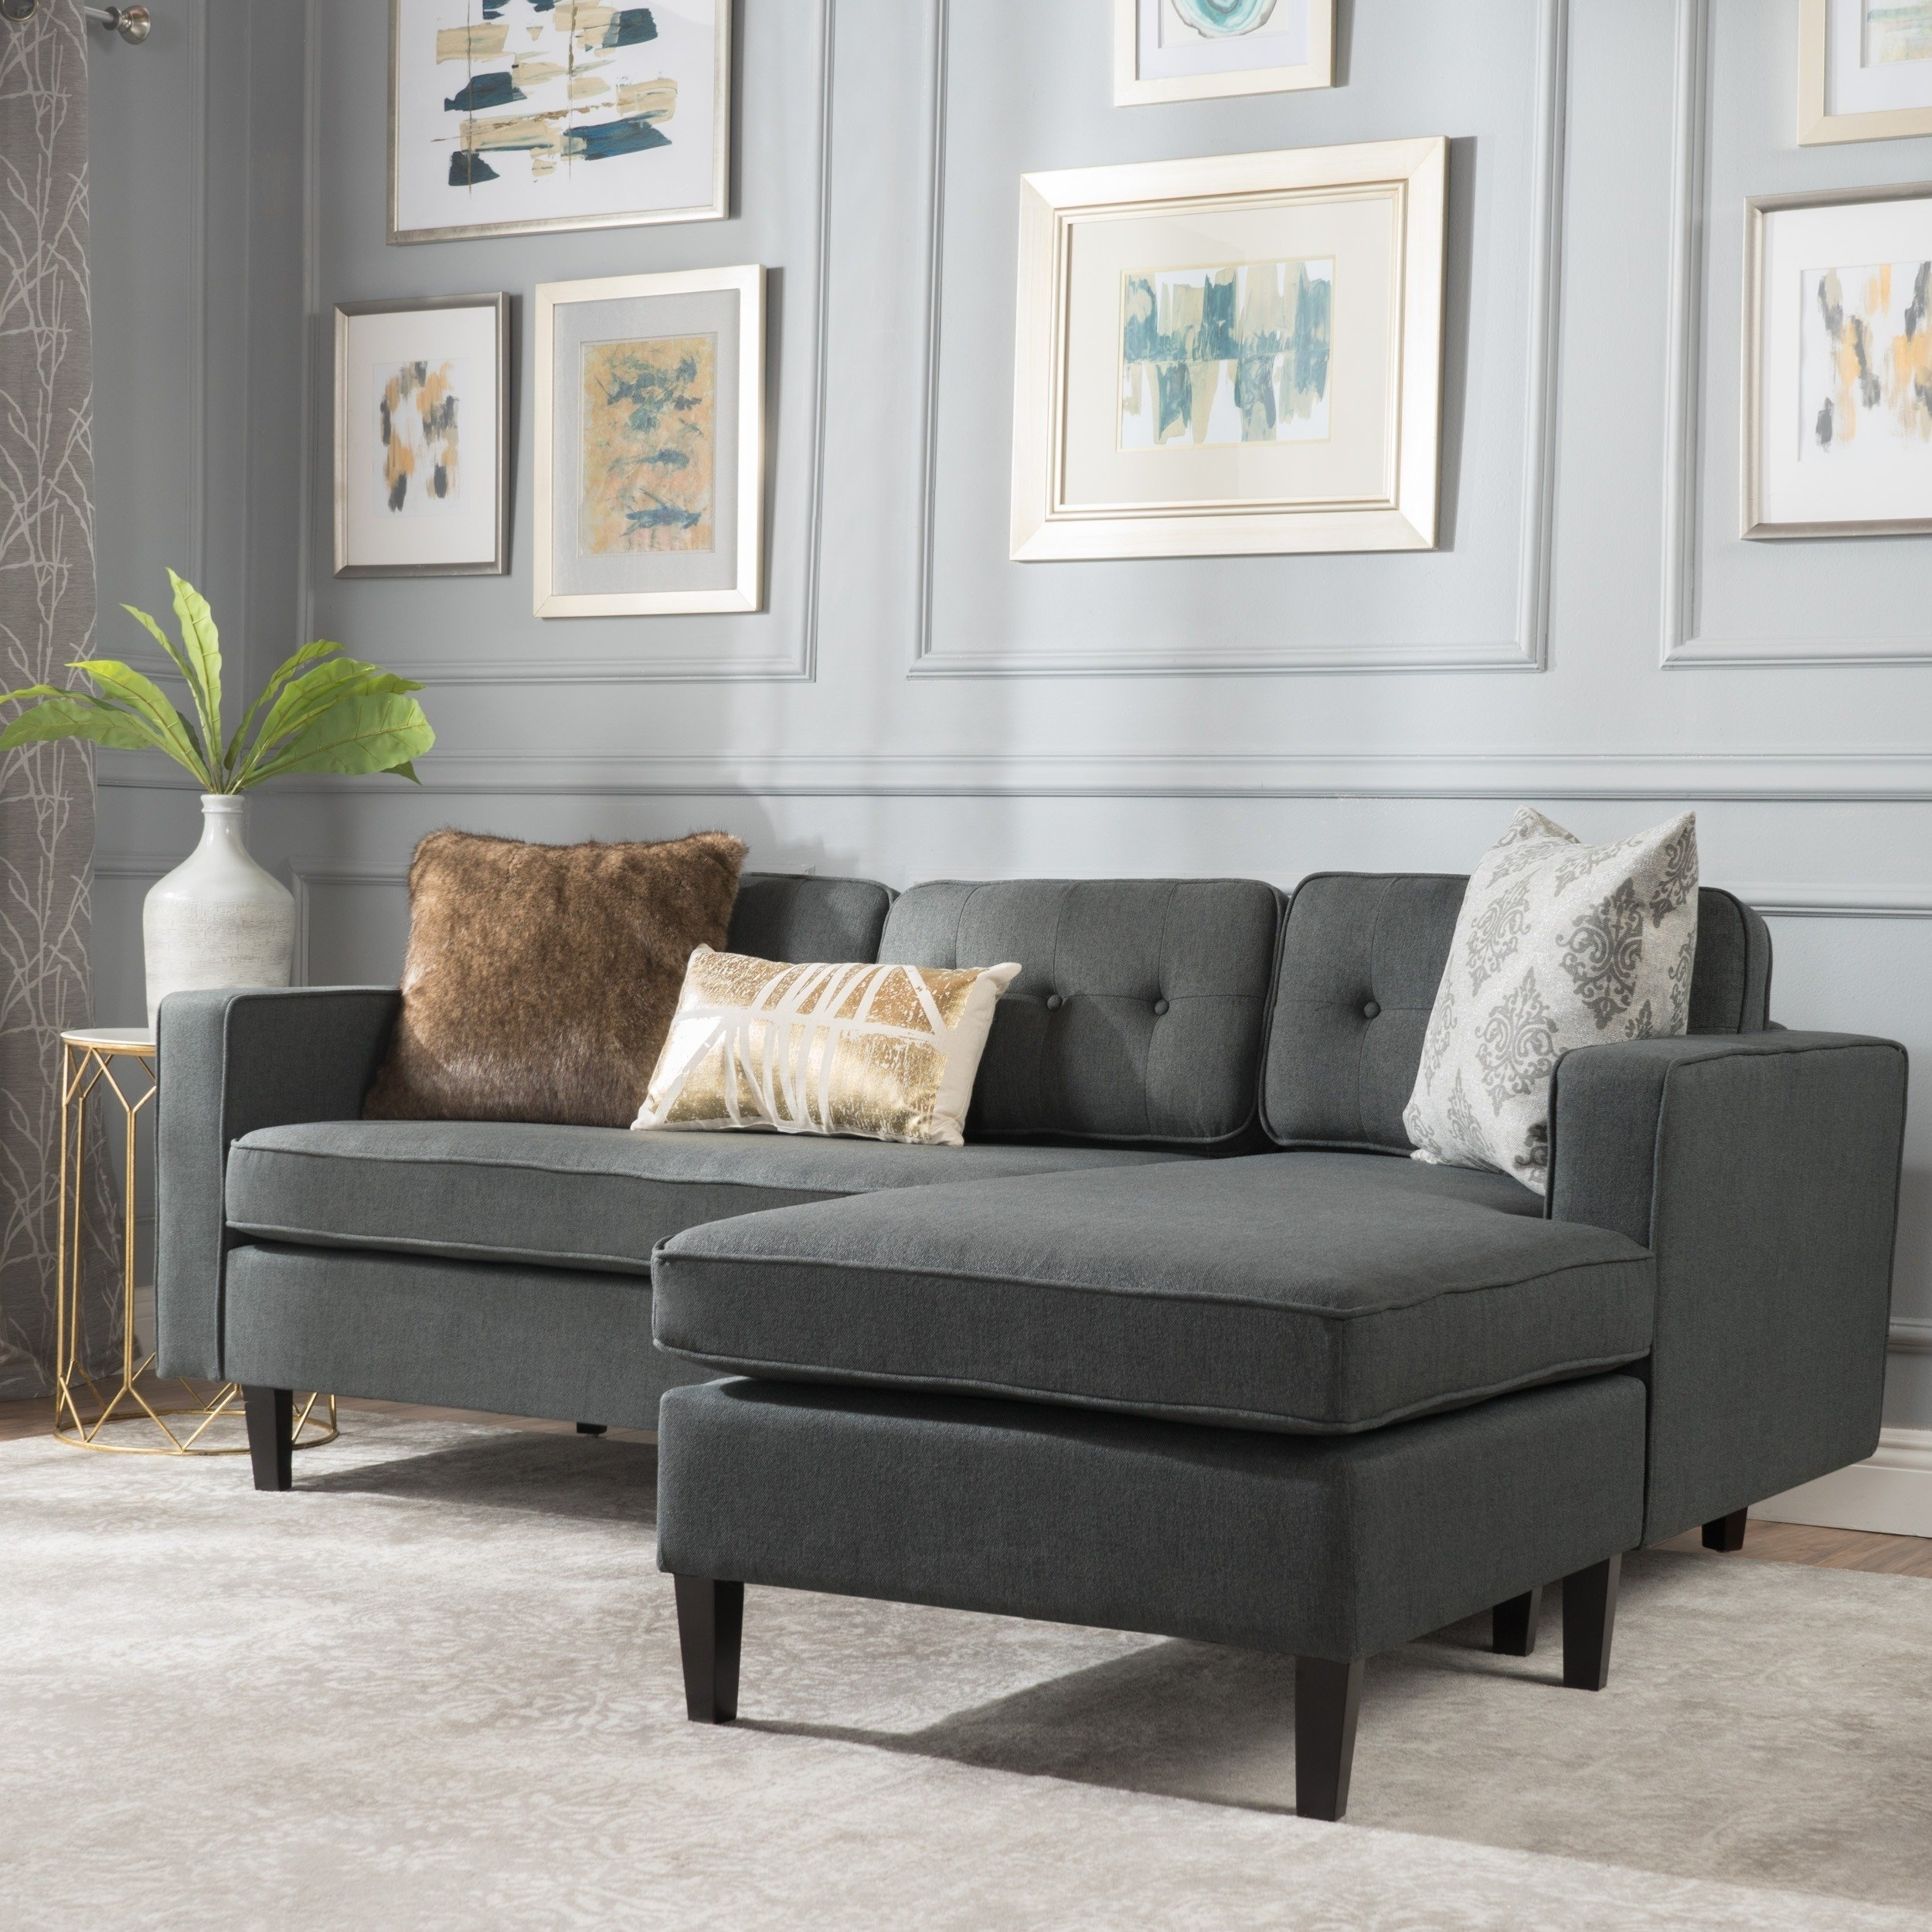 2 Piece Chaise Sectional Sofa | Baci Living Room Inside Tenny Dark Grey 2 Piece Left Facing Chaise Sectionals With 2 Headrest (Image 2 of 25)